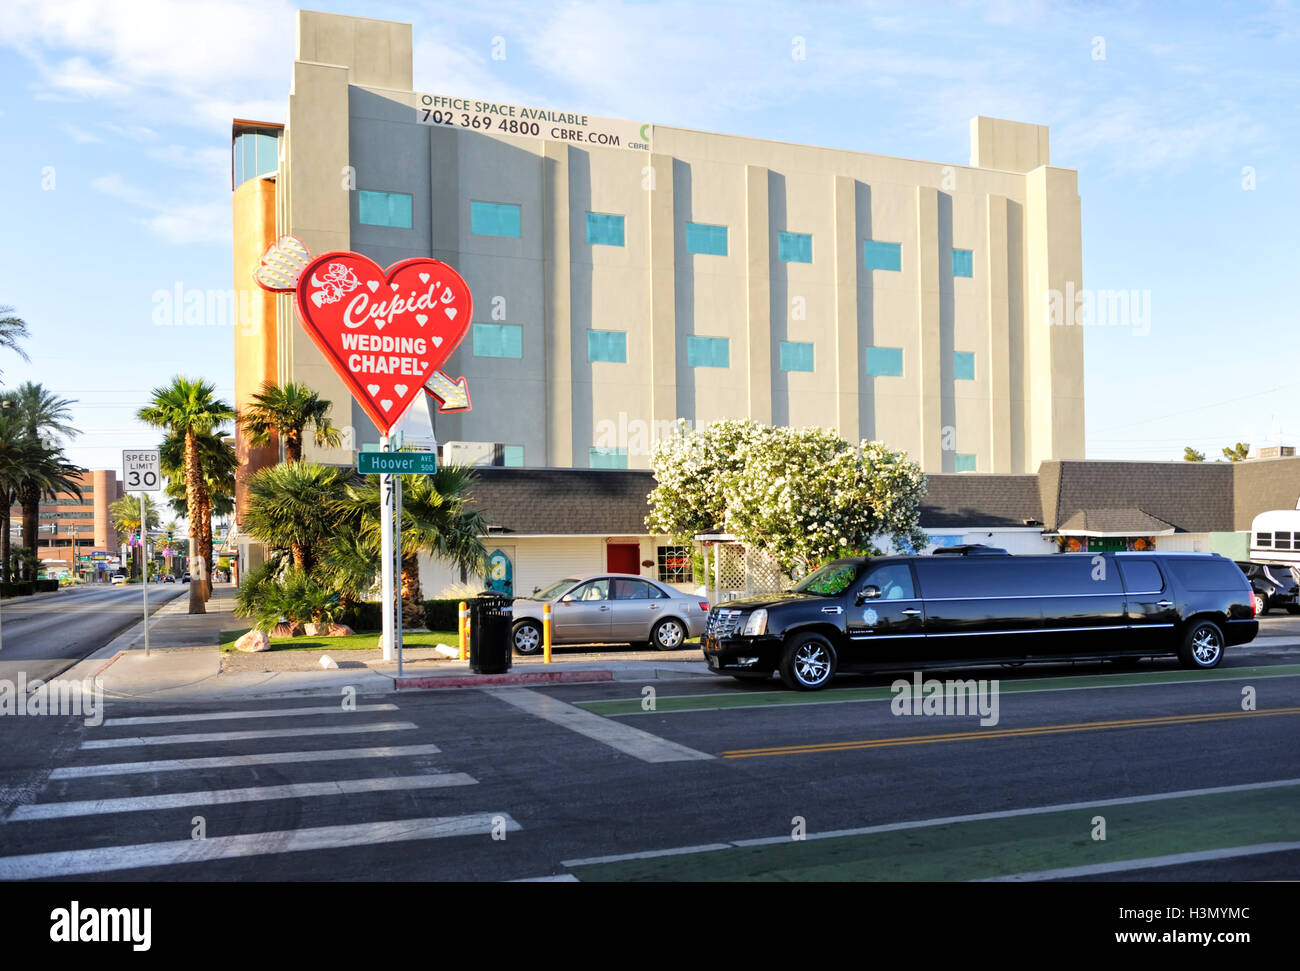 Cupids Wedding Chapel Downtown Las Vegas Stock Photo